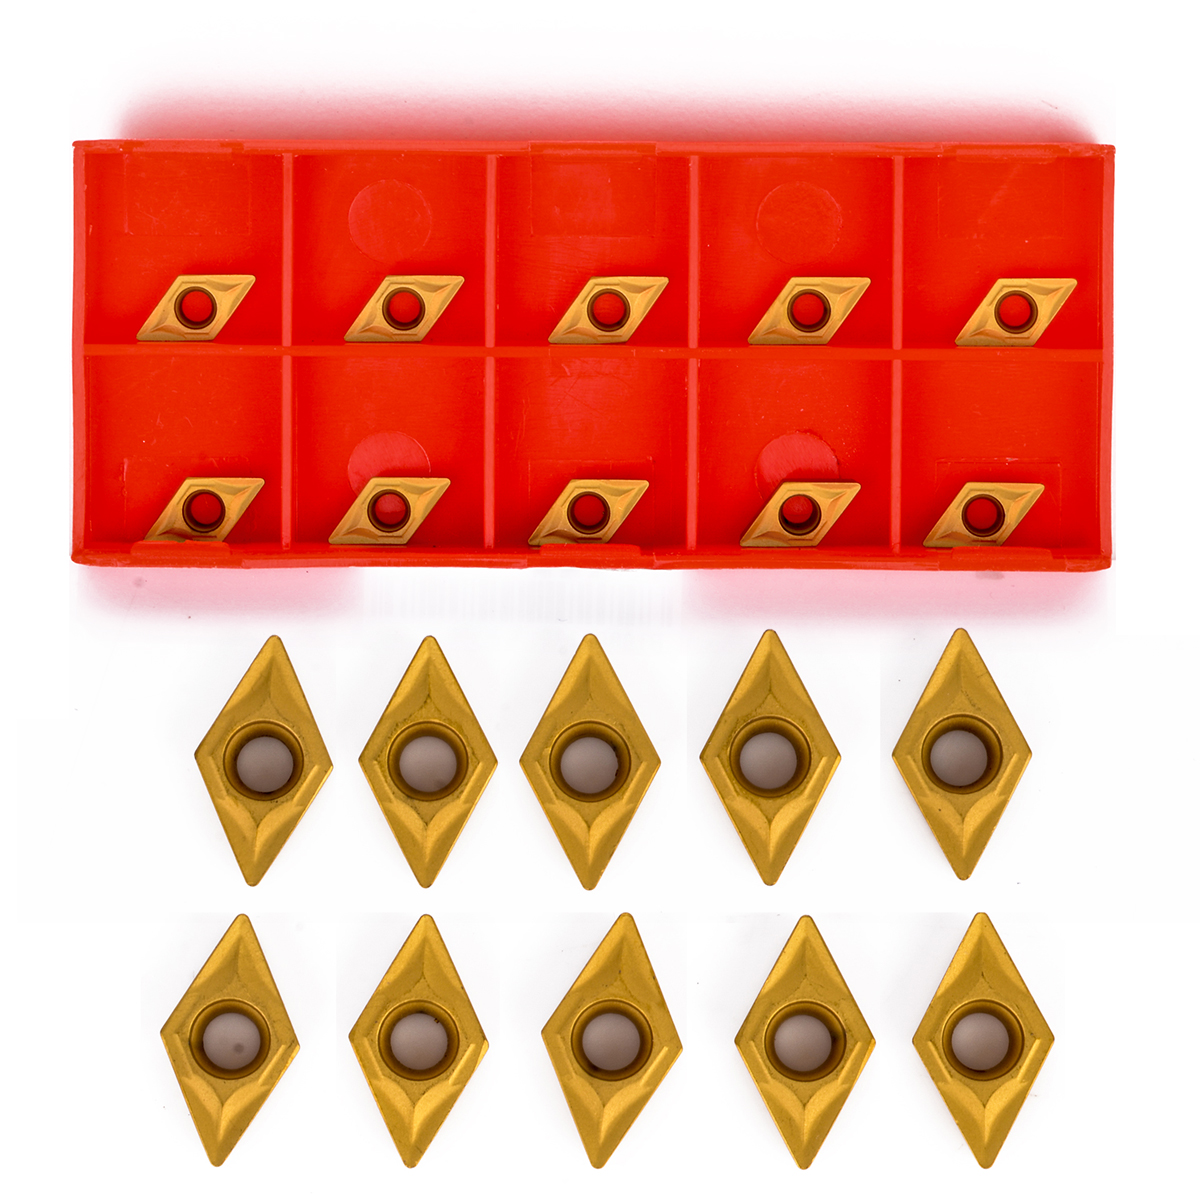 10pcs DCMT070204 YBC251 Blades Gold Carbide Inserts CNC Lathe Cutter For Lathe Turning Tool Boring Bar 7 X 7 X 2mm